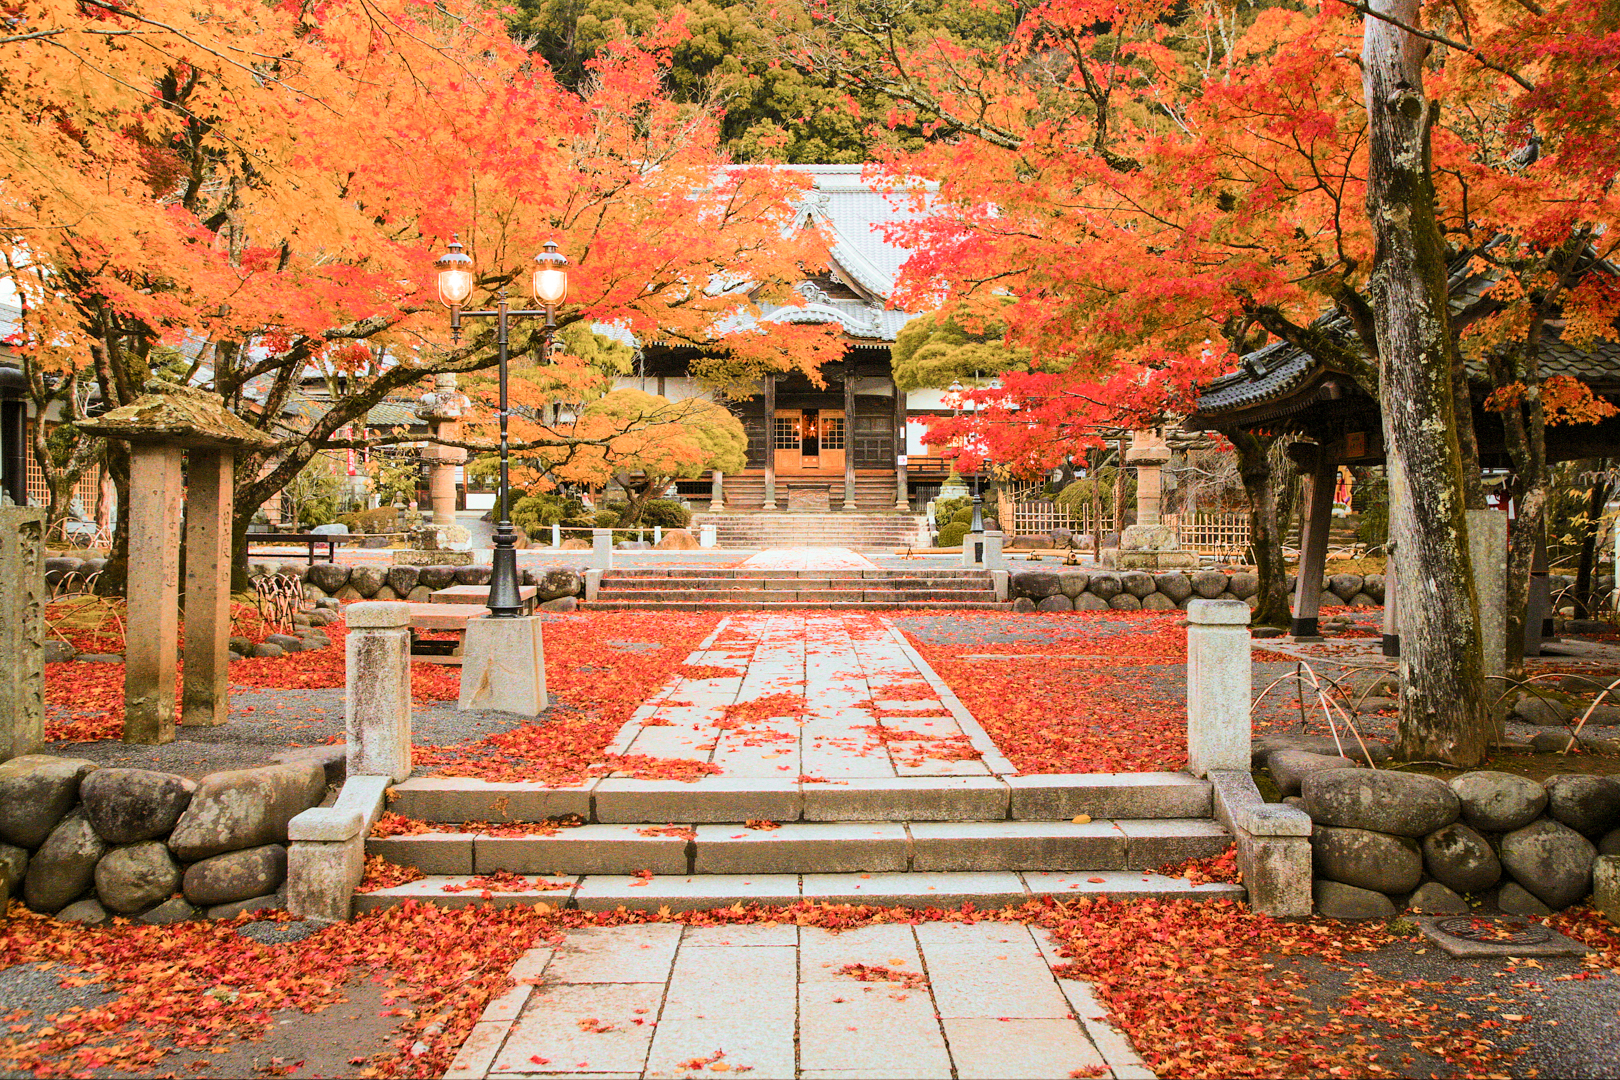 The tree-lined walkway leading up to Shuzenji Temple, with the temple in the background. The photo has been taken in fall with the leaves a vivid red and orange, and many leaves already scattered on the ground, creating a very bright contrast with the temple and stone walkway.